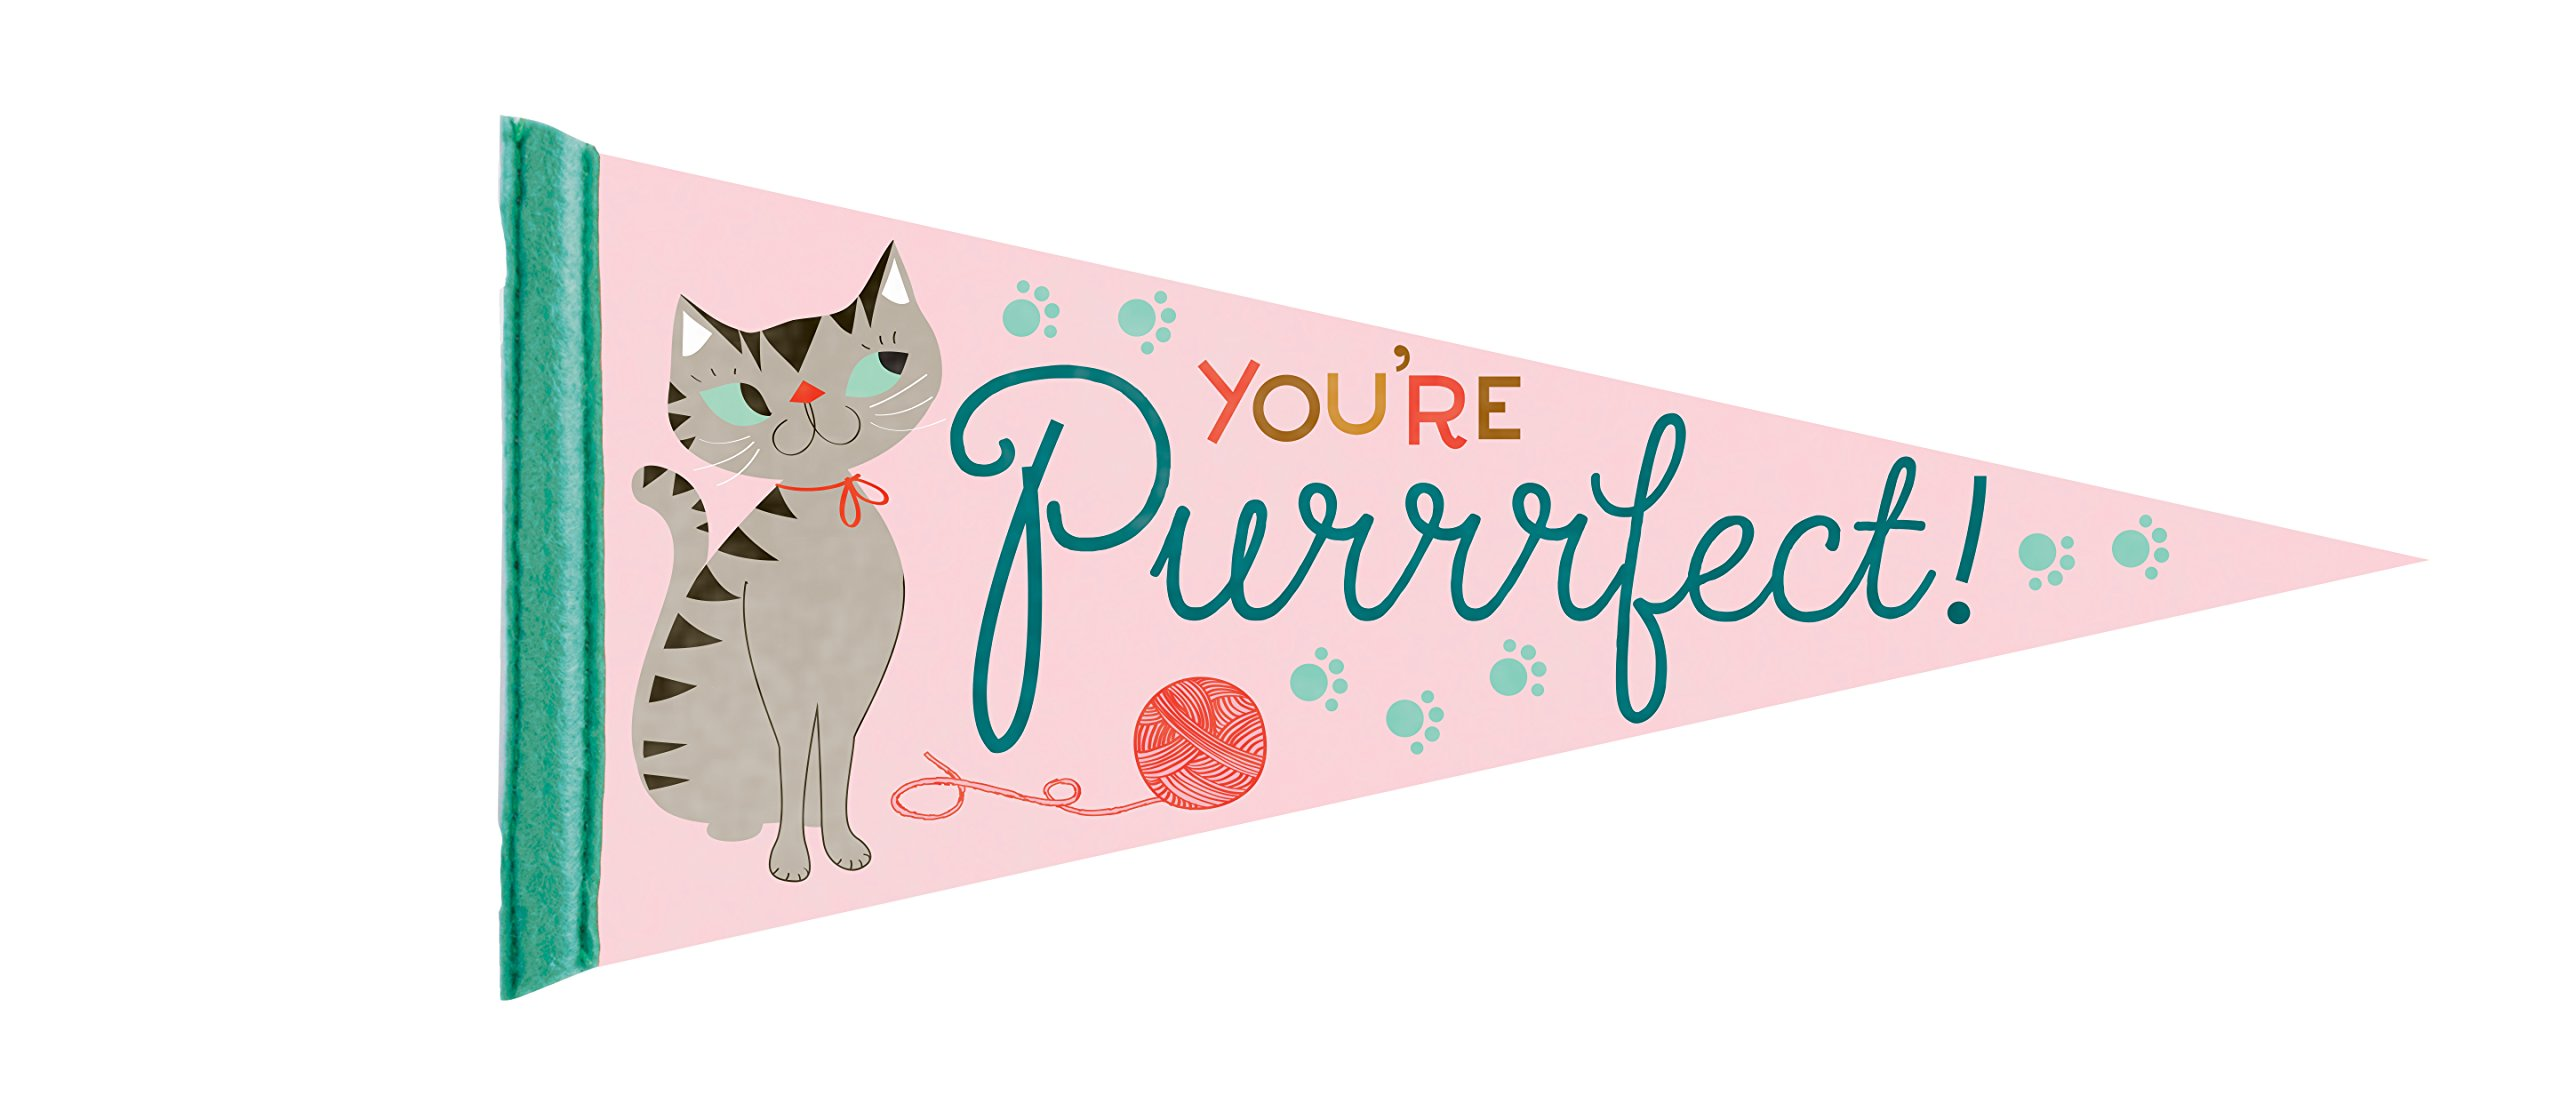 Party Partners You're Purrrfect! Decorative Large Felt Pennant, Pink